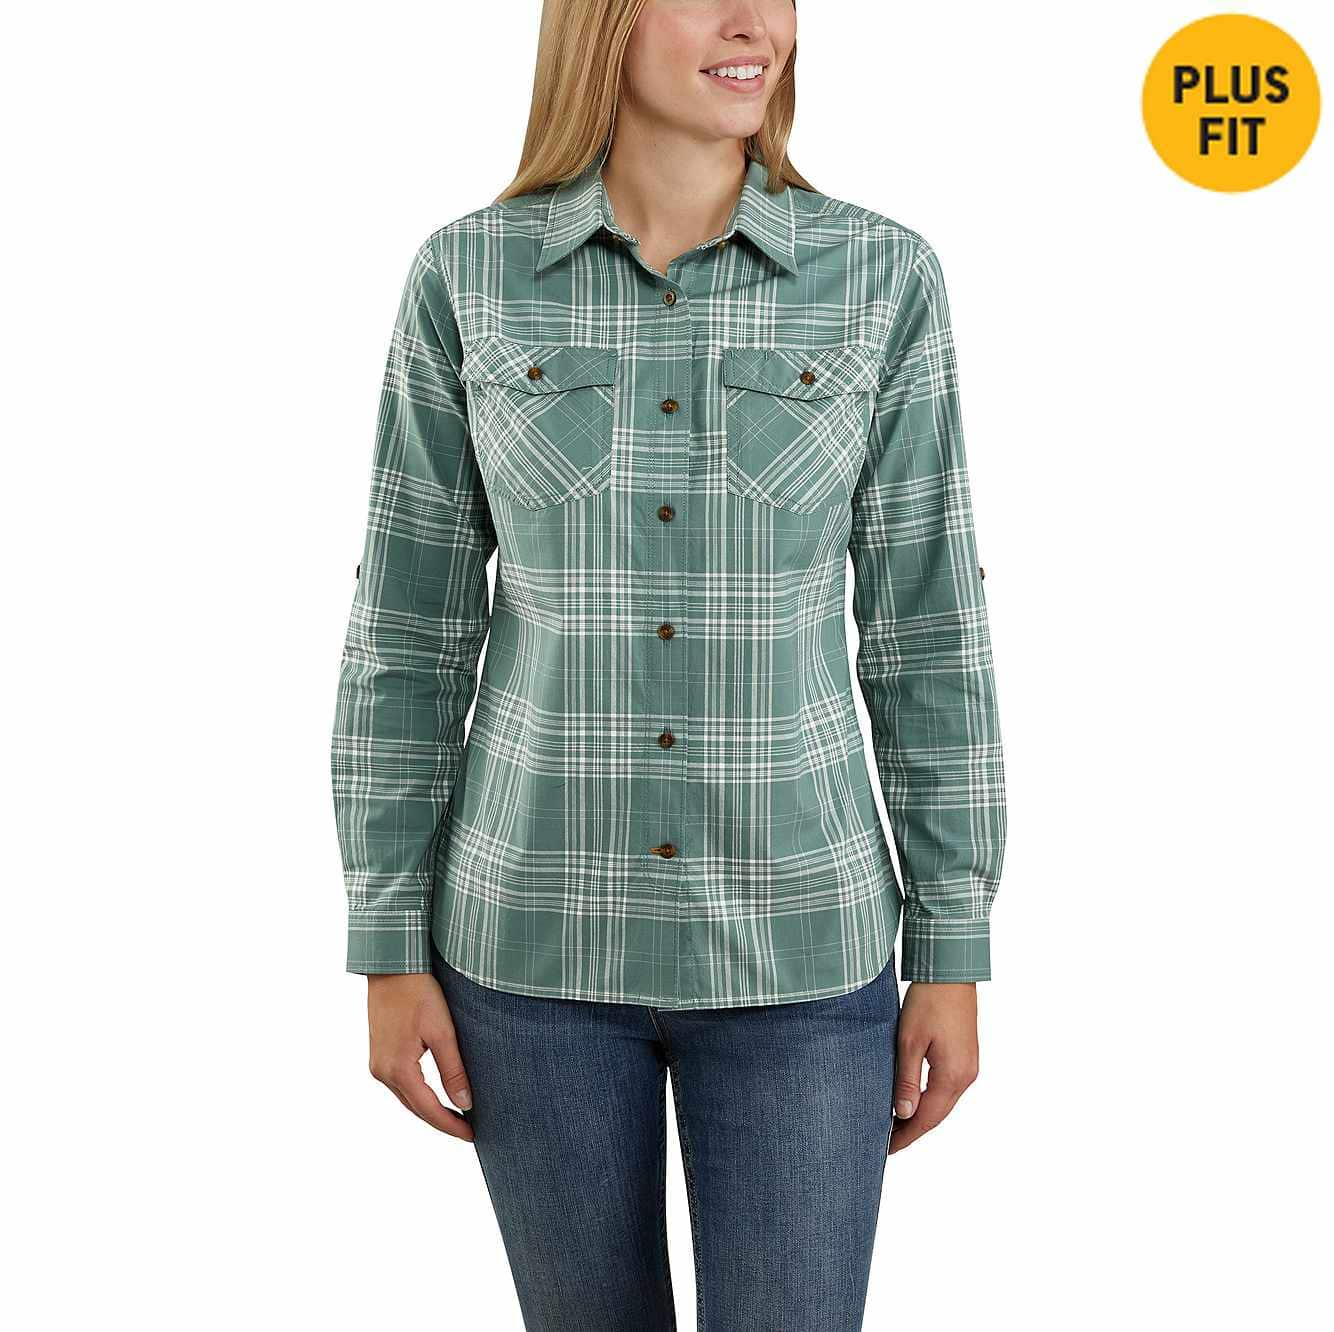 Picture of Rugged Flex® Slightly Fitted Long-Sleeve Plaid Shirt in Musk Green